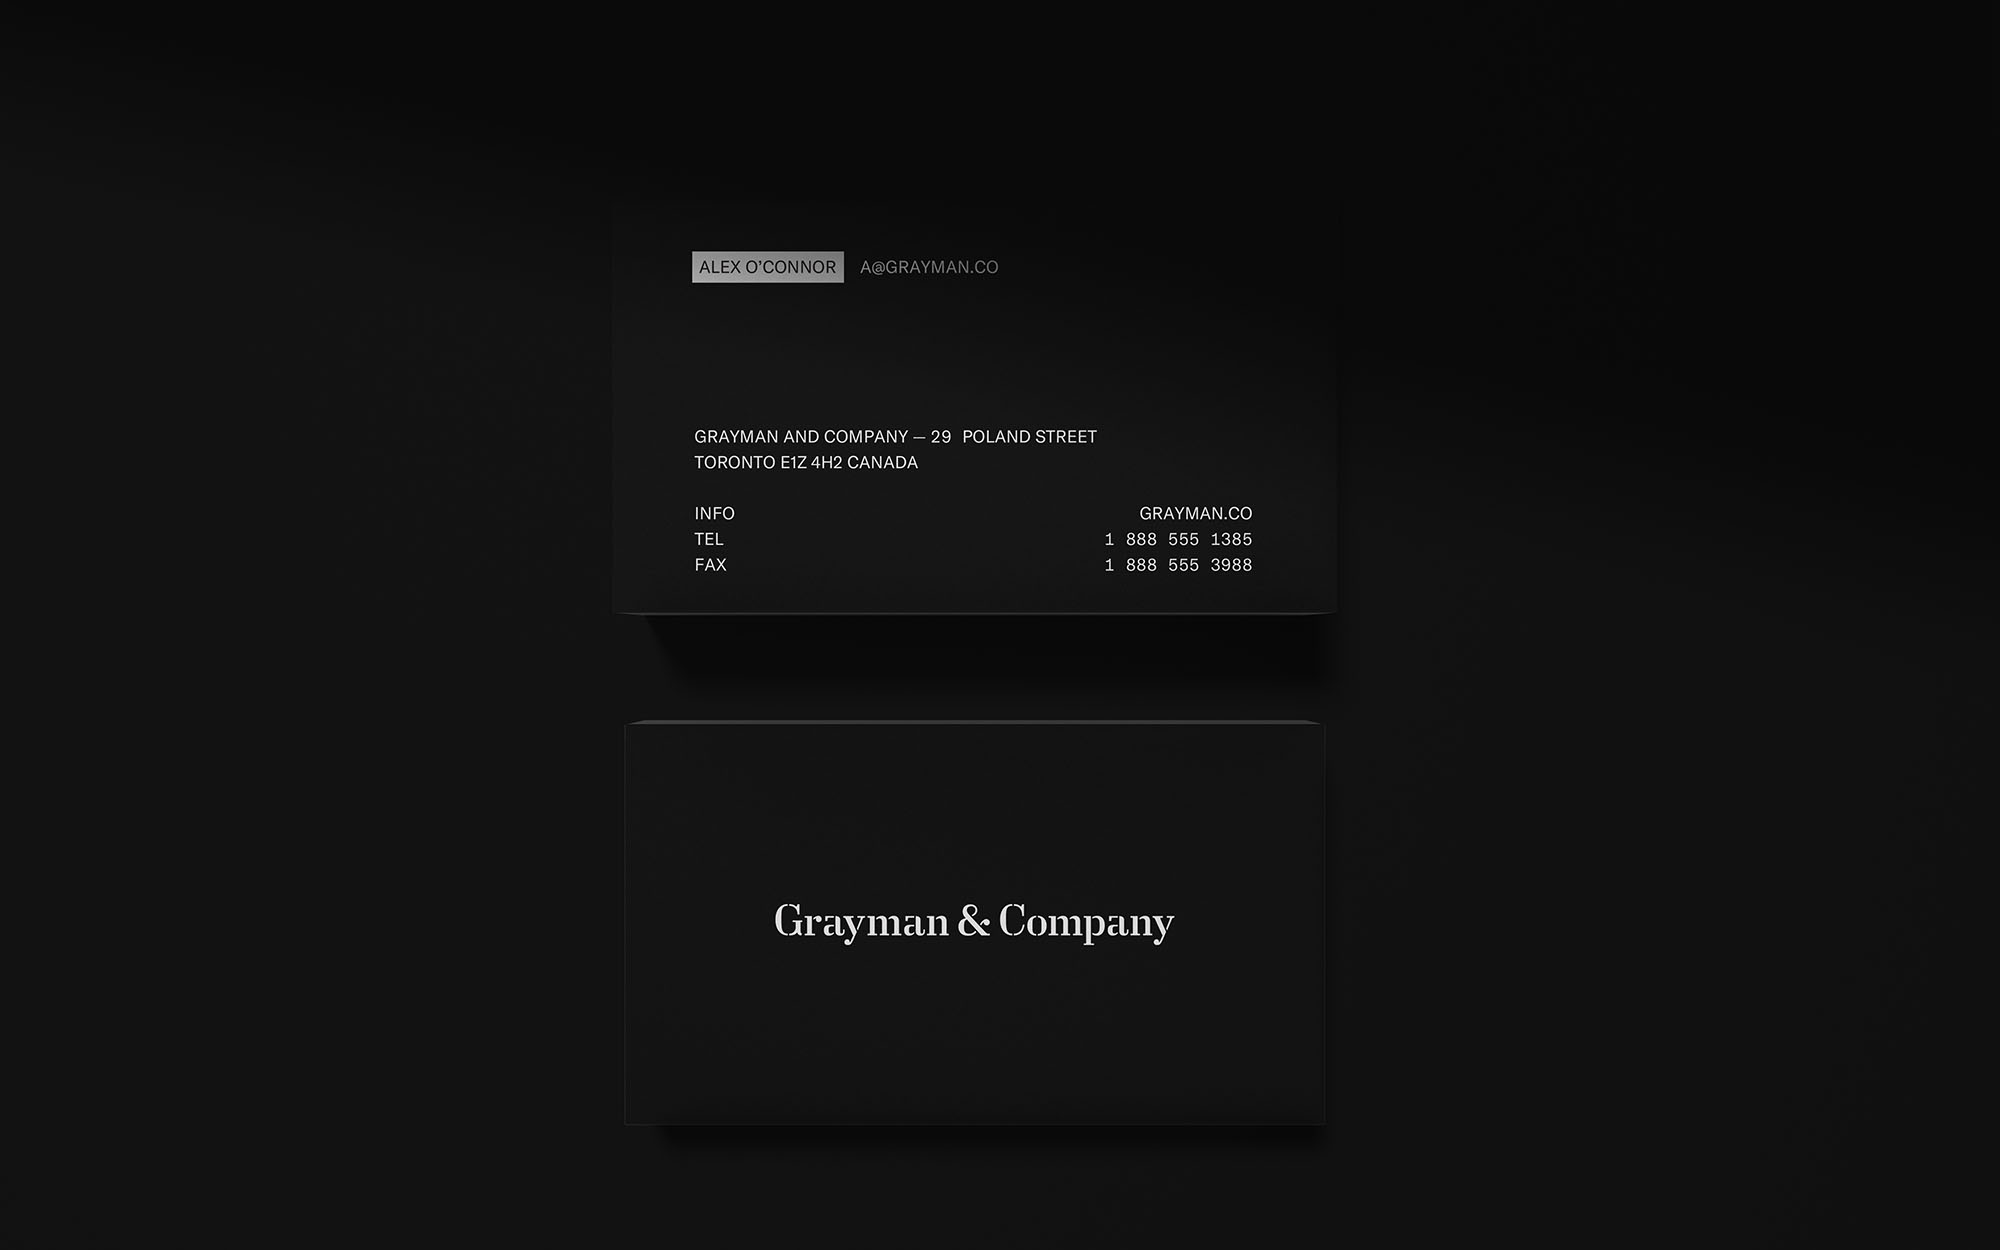 jderksen-graymanco-bizcards2